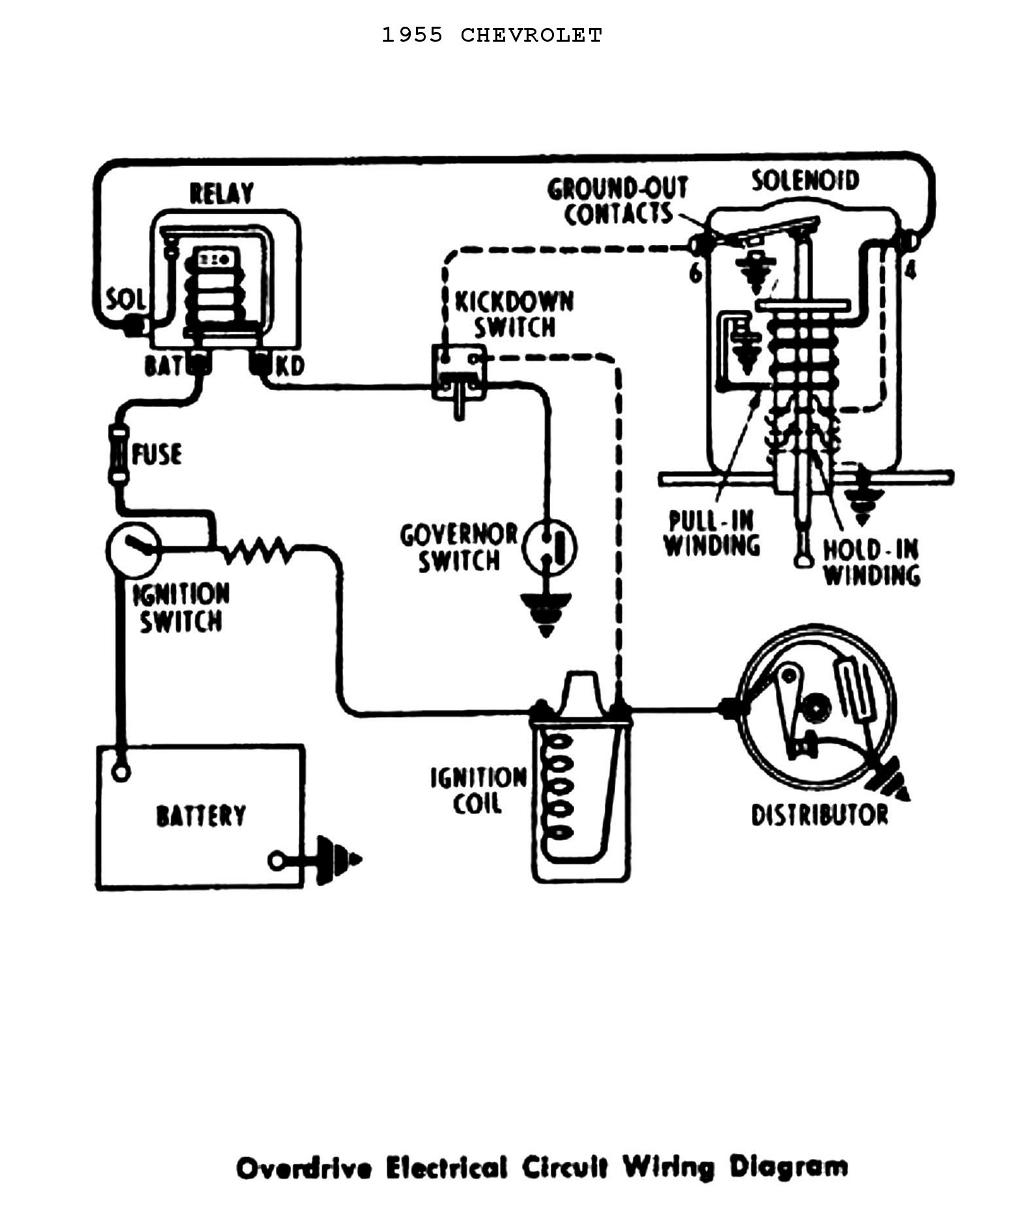 1990 chevy 350 distributor wiring diagram